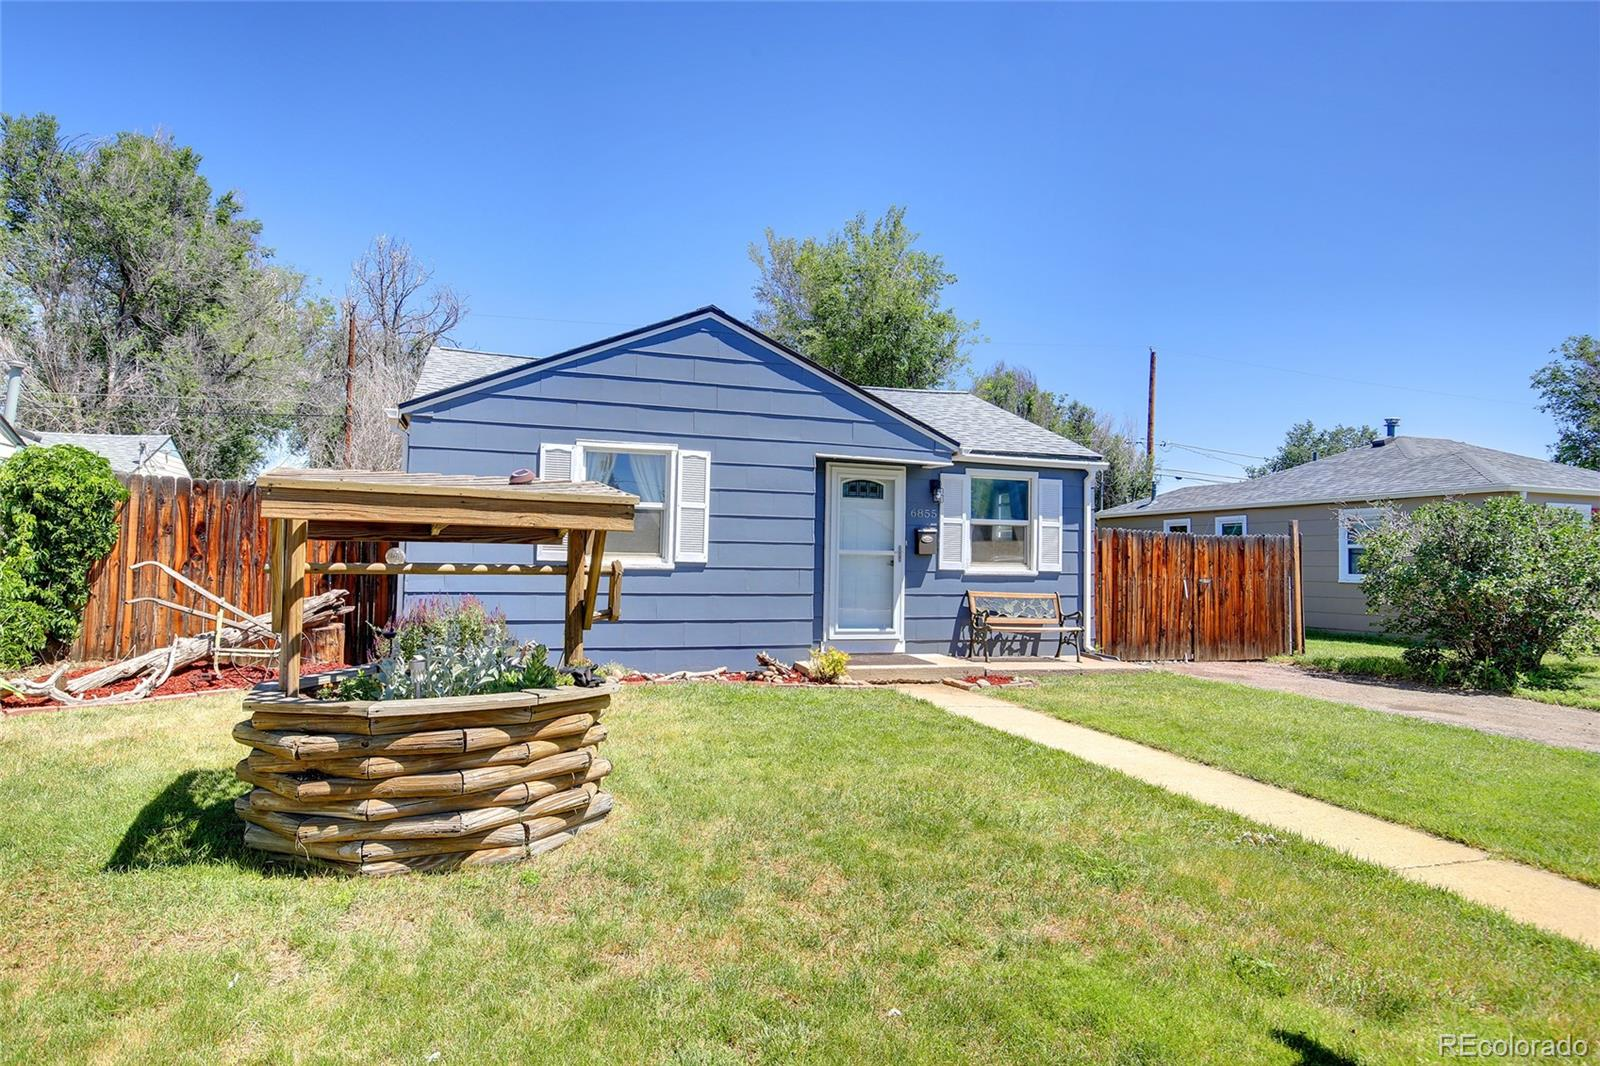 MLS# 4917886 - 3 - 6855 W 55th Place, Arvada, CO 80002